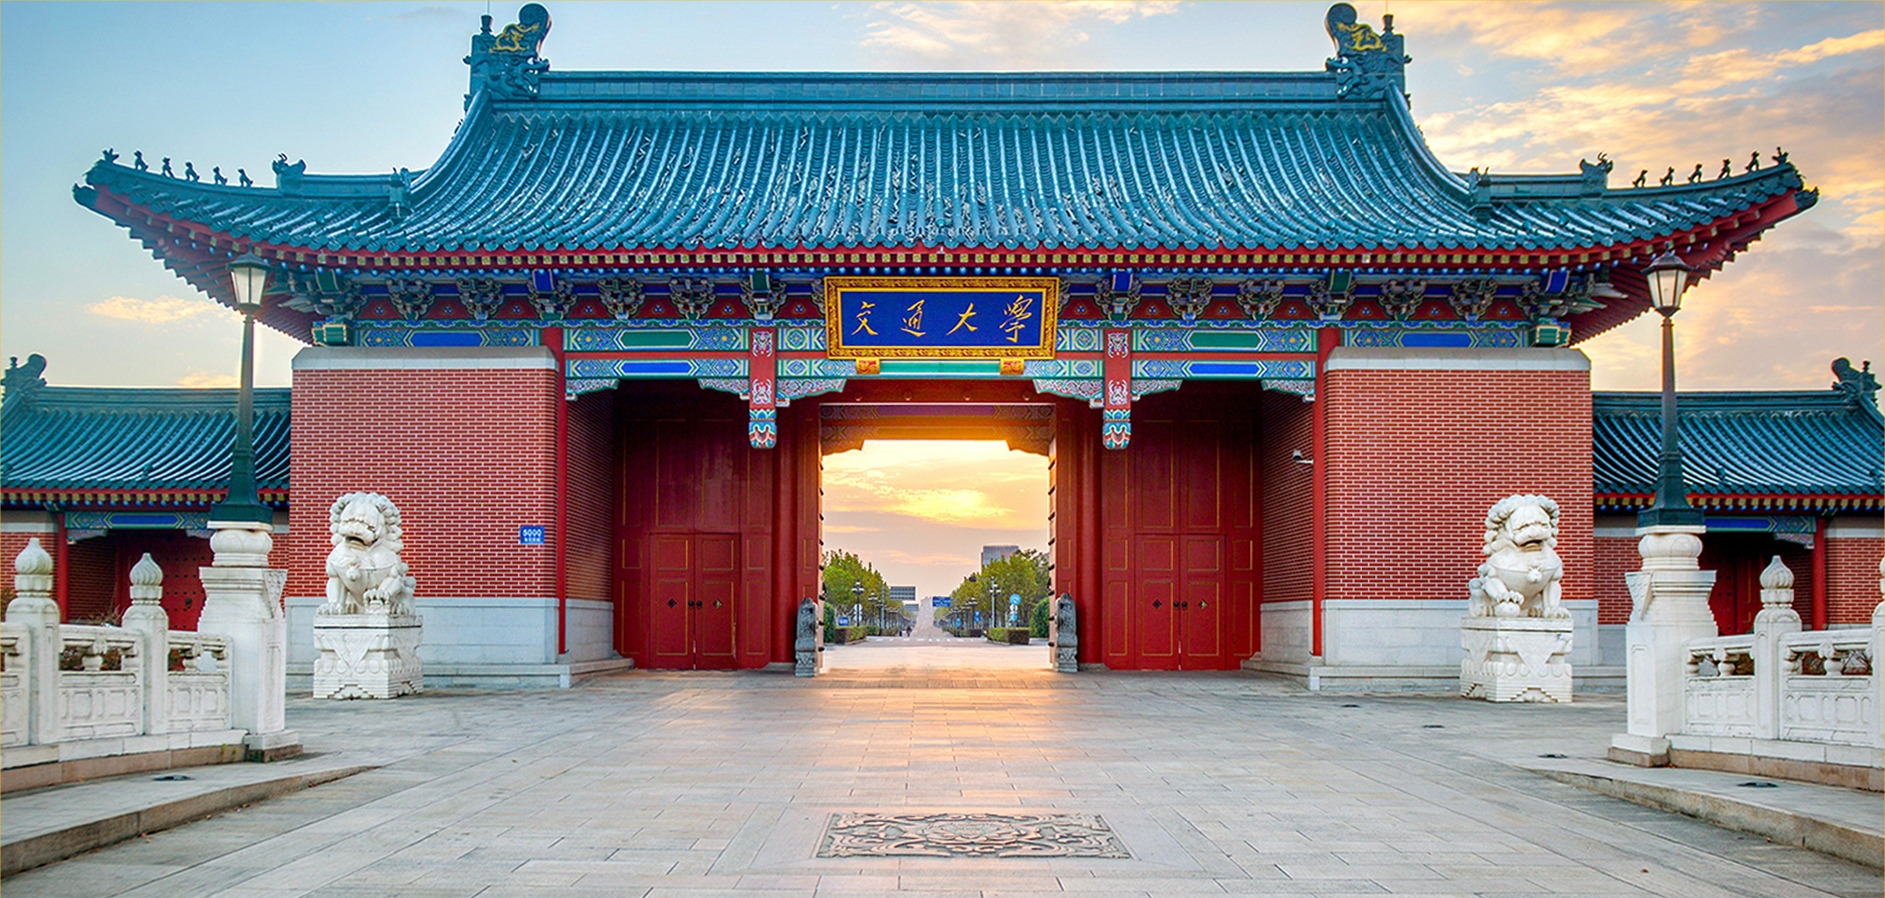 Close-up-view-of-the-gate-of-Shanghai-Jiaotong-University